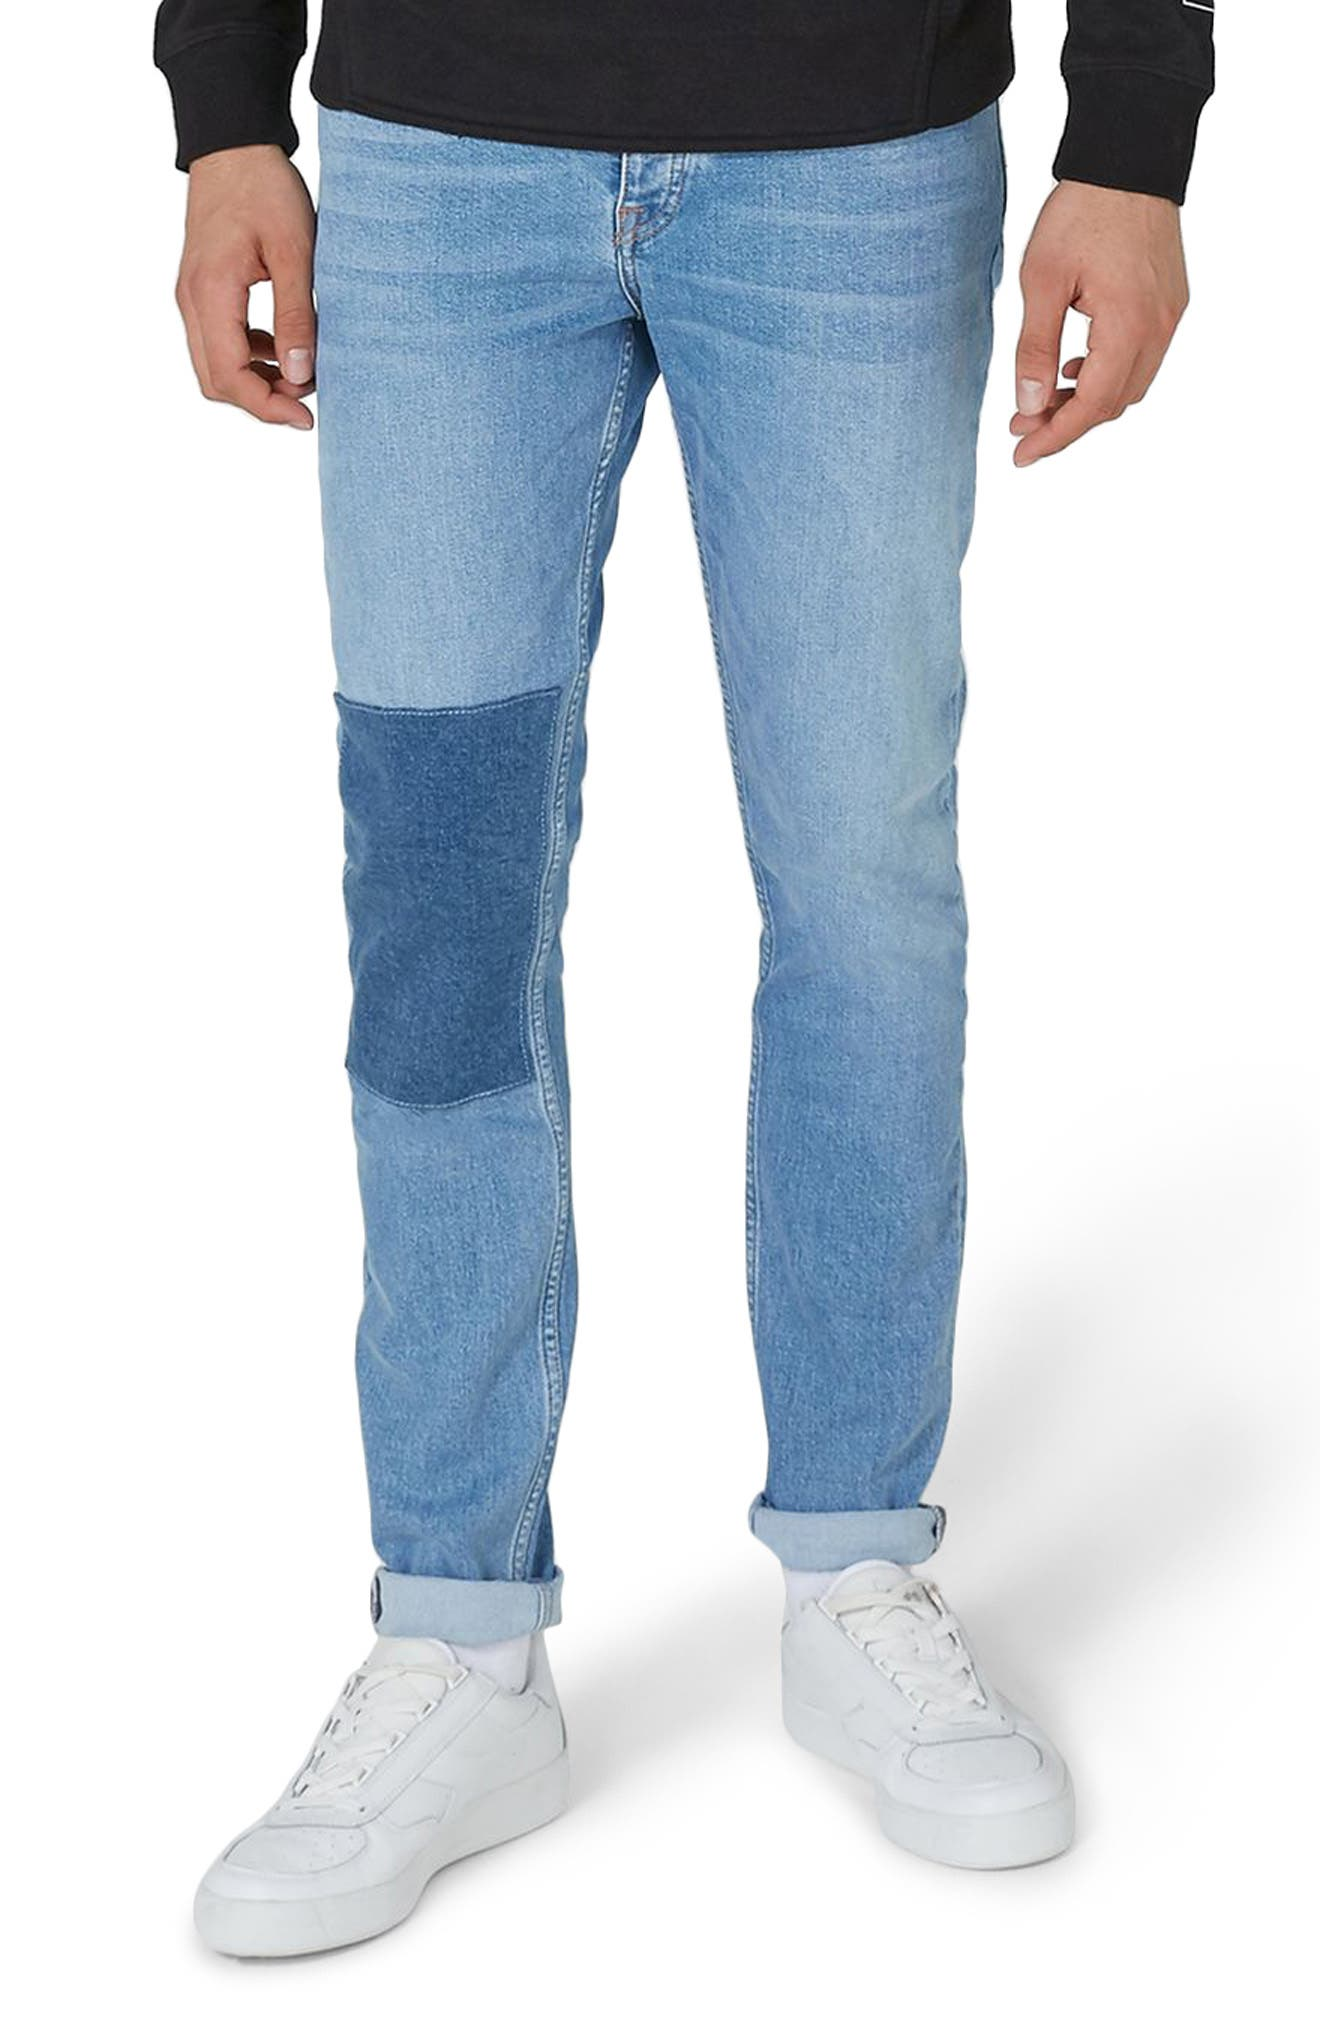 Patch Stretch Skinny Jeans,                         Main,                         color, 400